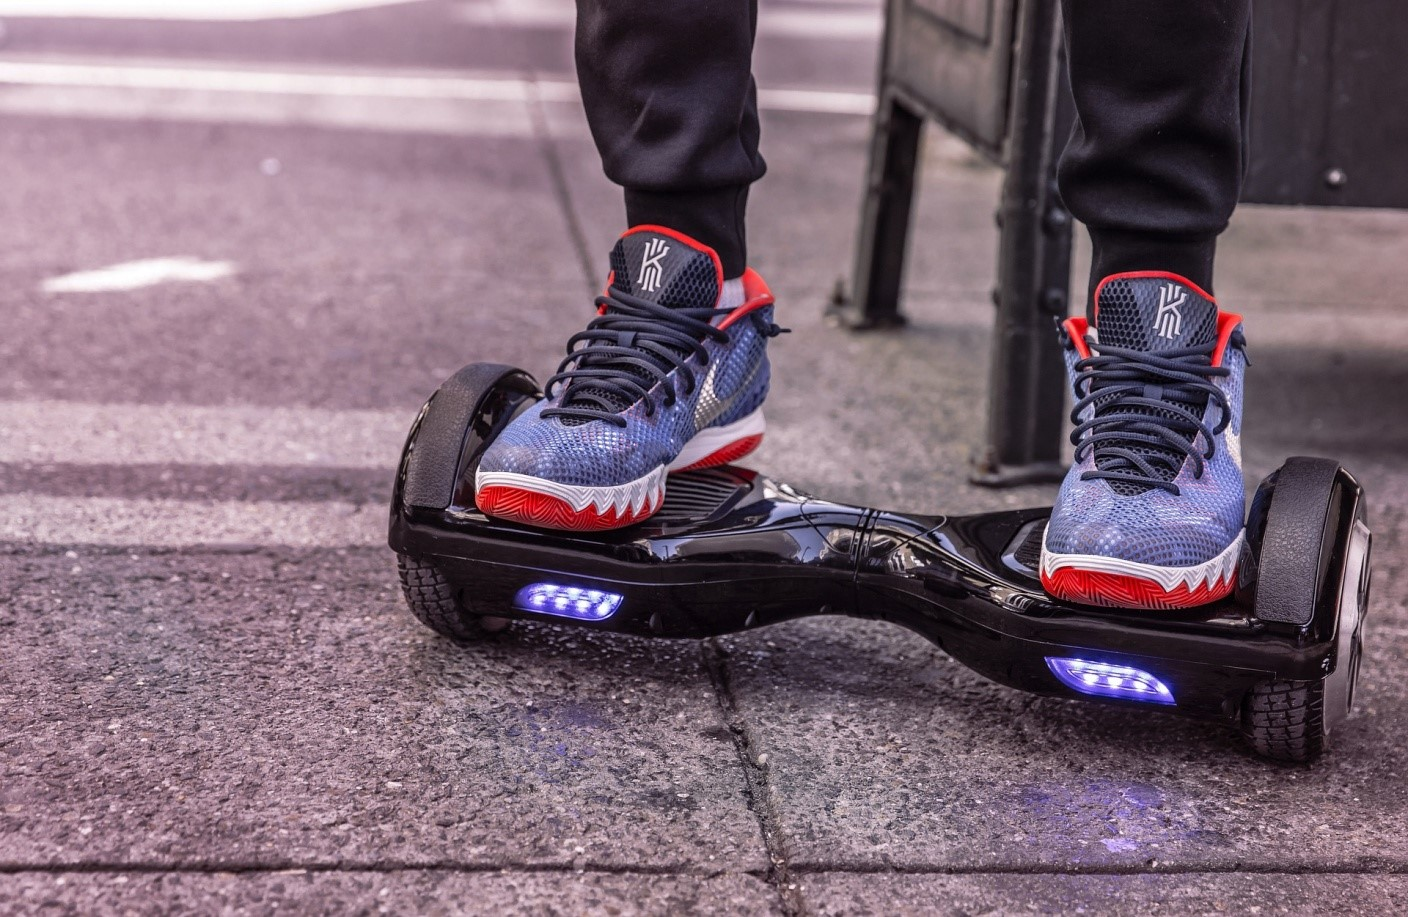 The Rise of the Hoverboard: Could They Replace Cars?